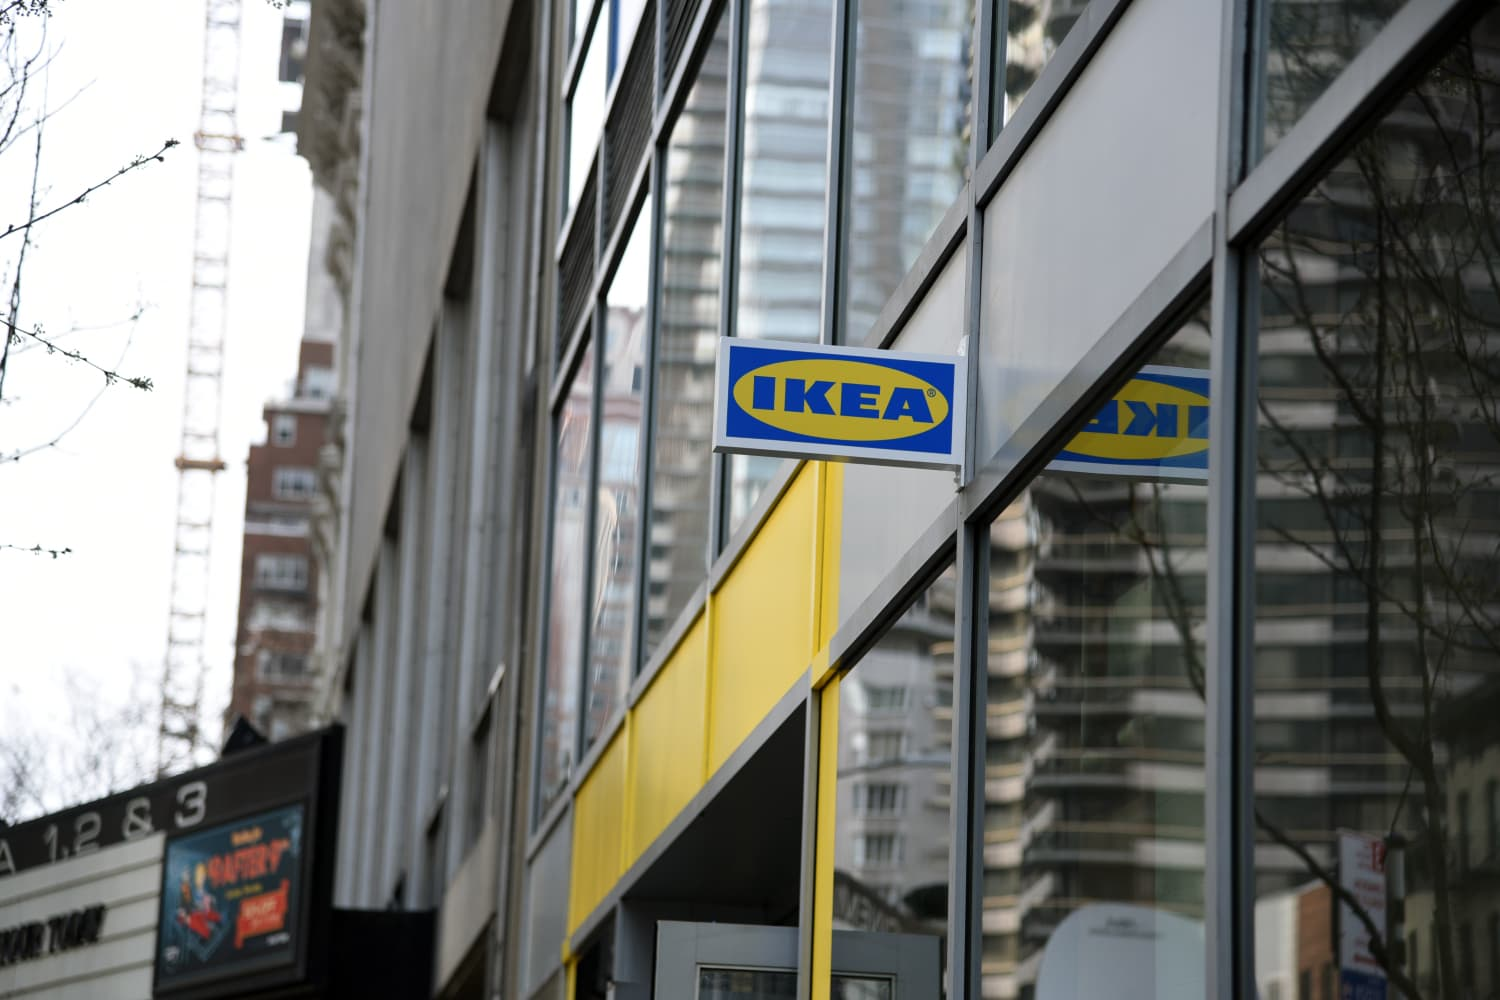 Small Space Dwellers Rejoice: IKEA Has a New Store For You